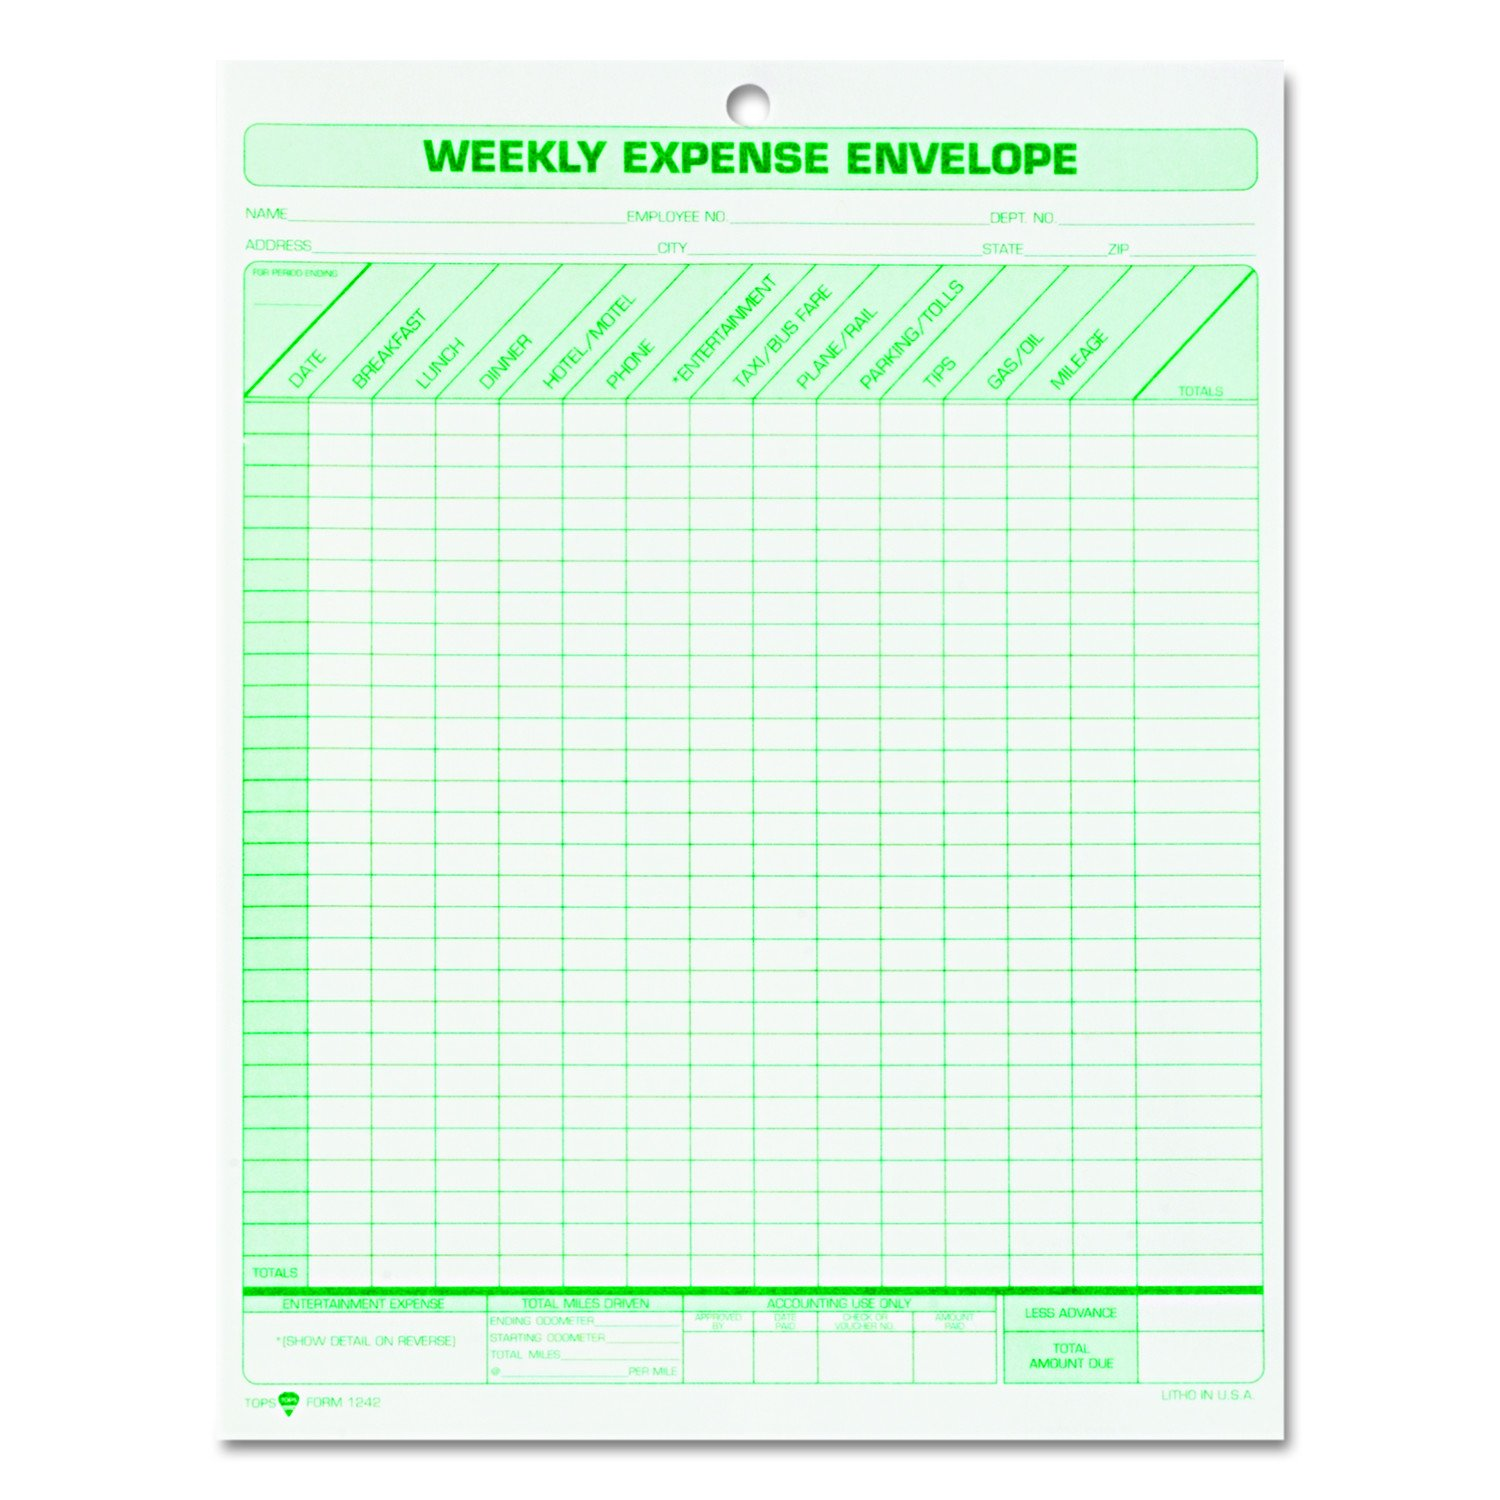 TOPS Weekly Expense Envelope, 8-1/2 X 11, 20 Envelopes Per Pack (1242)